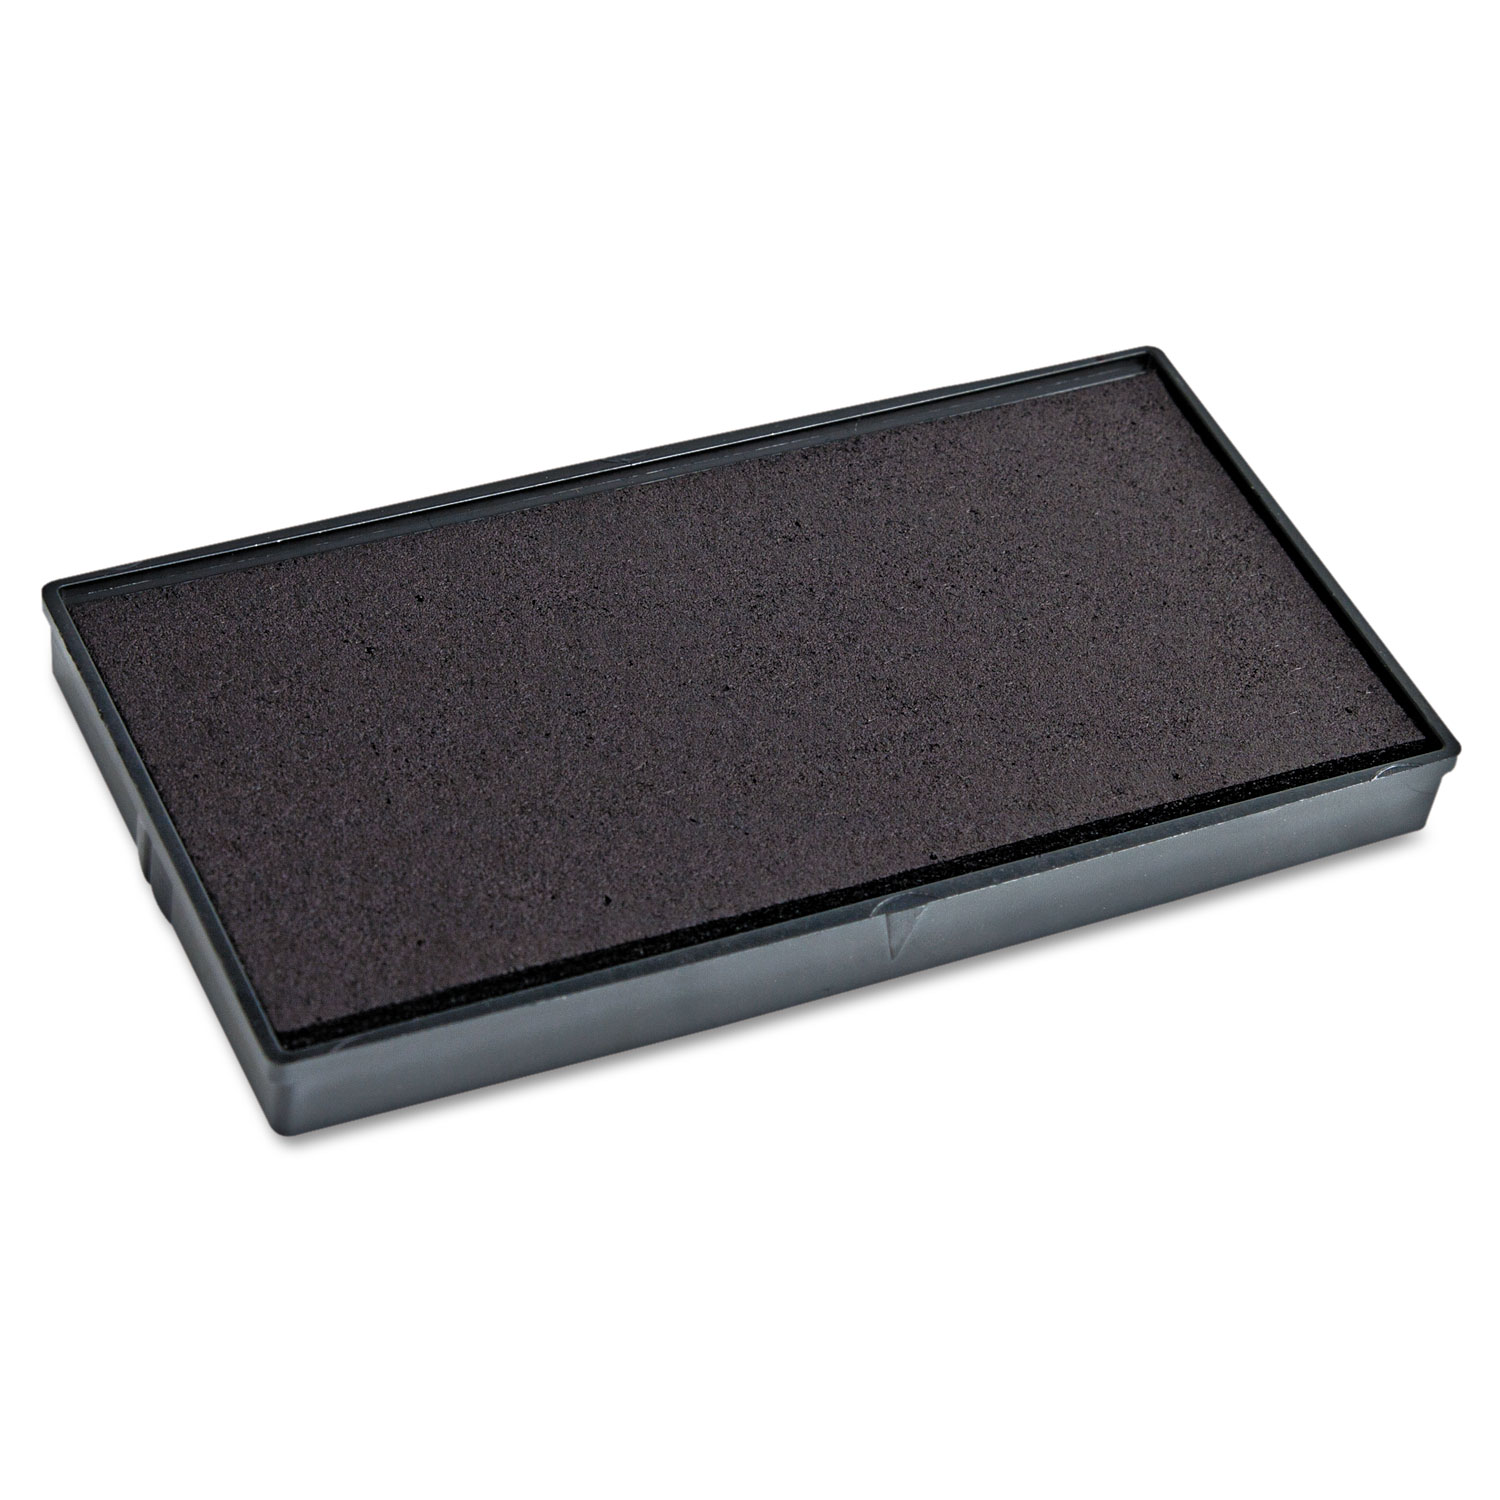 Replacement Ink Pad for 2000PLUS 1SI60P, Black COS065475